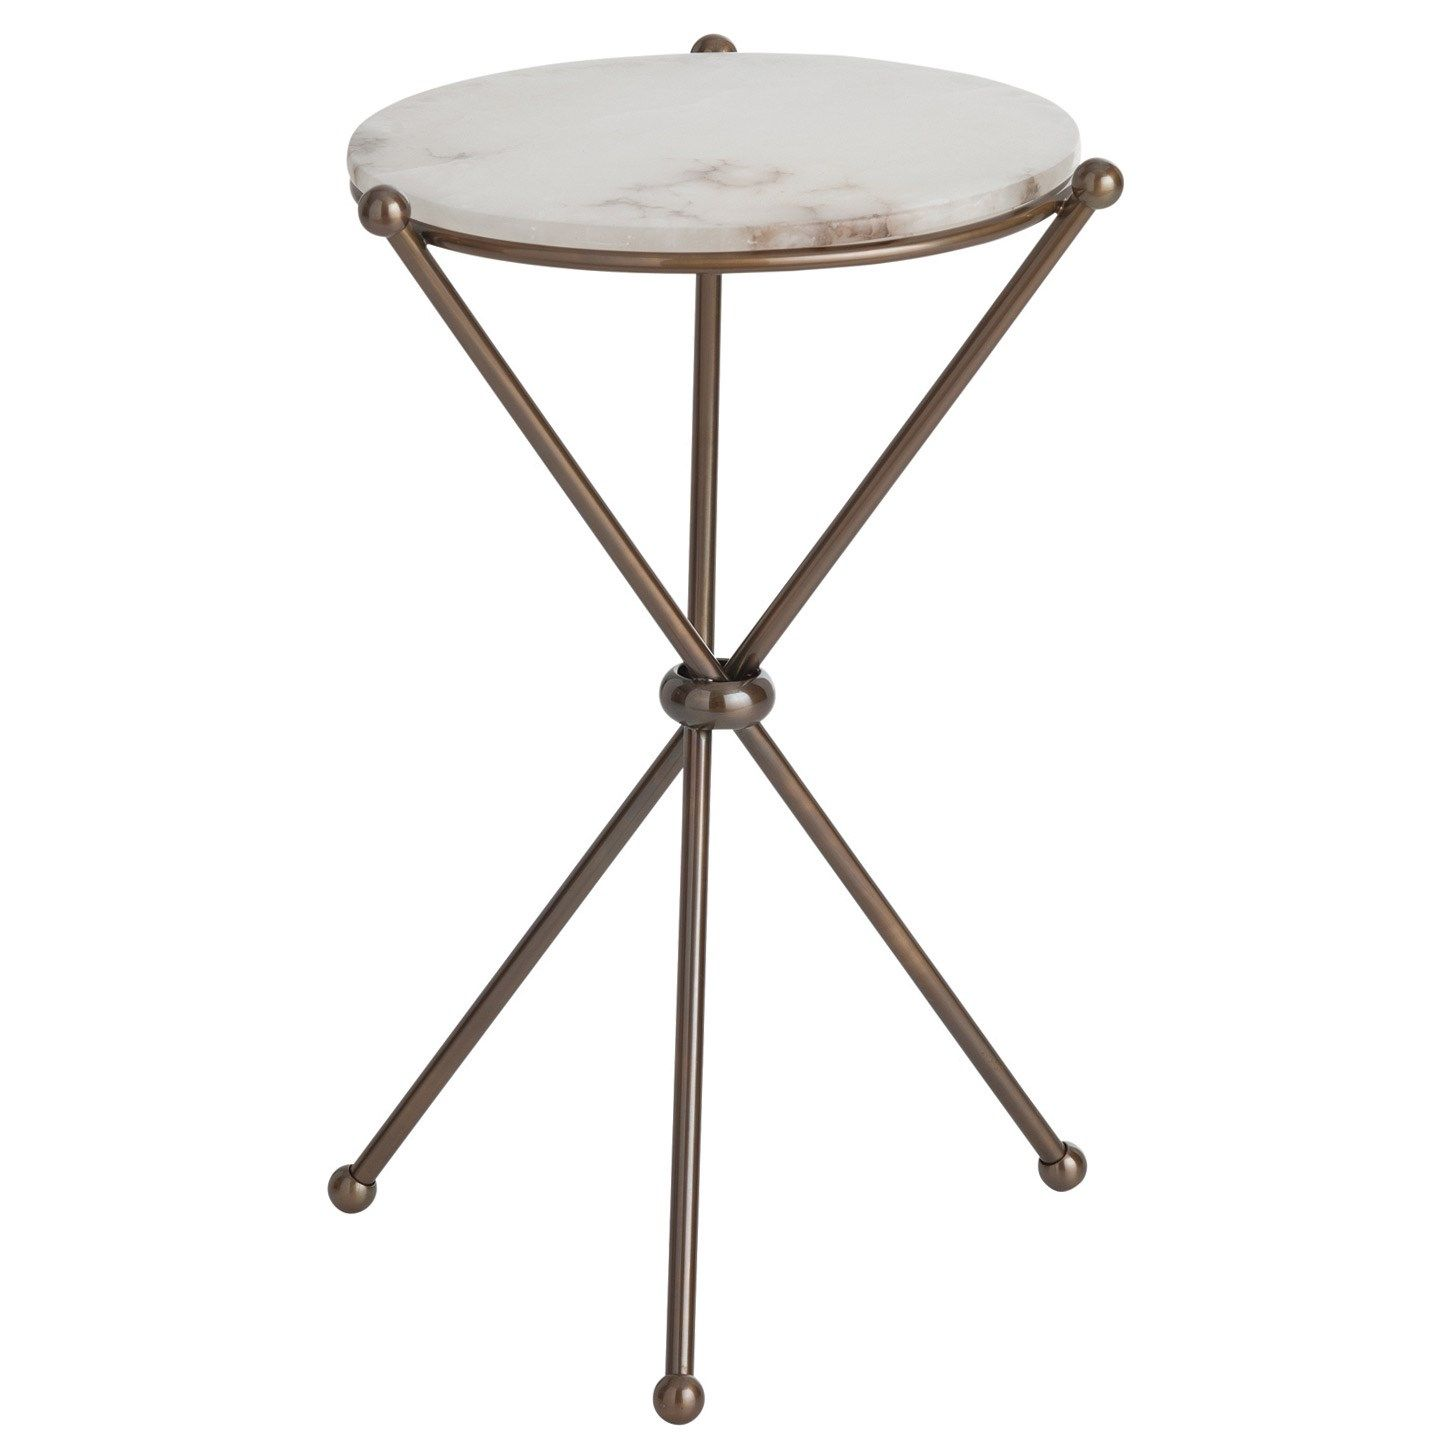 arteriors chloe antique brass marble accent table haunts homes small kmart kids coffee runner inexpensive lamps ceramic end stool hammered copper top tables black dining set